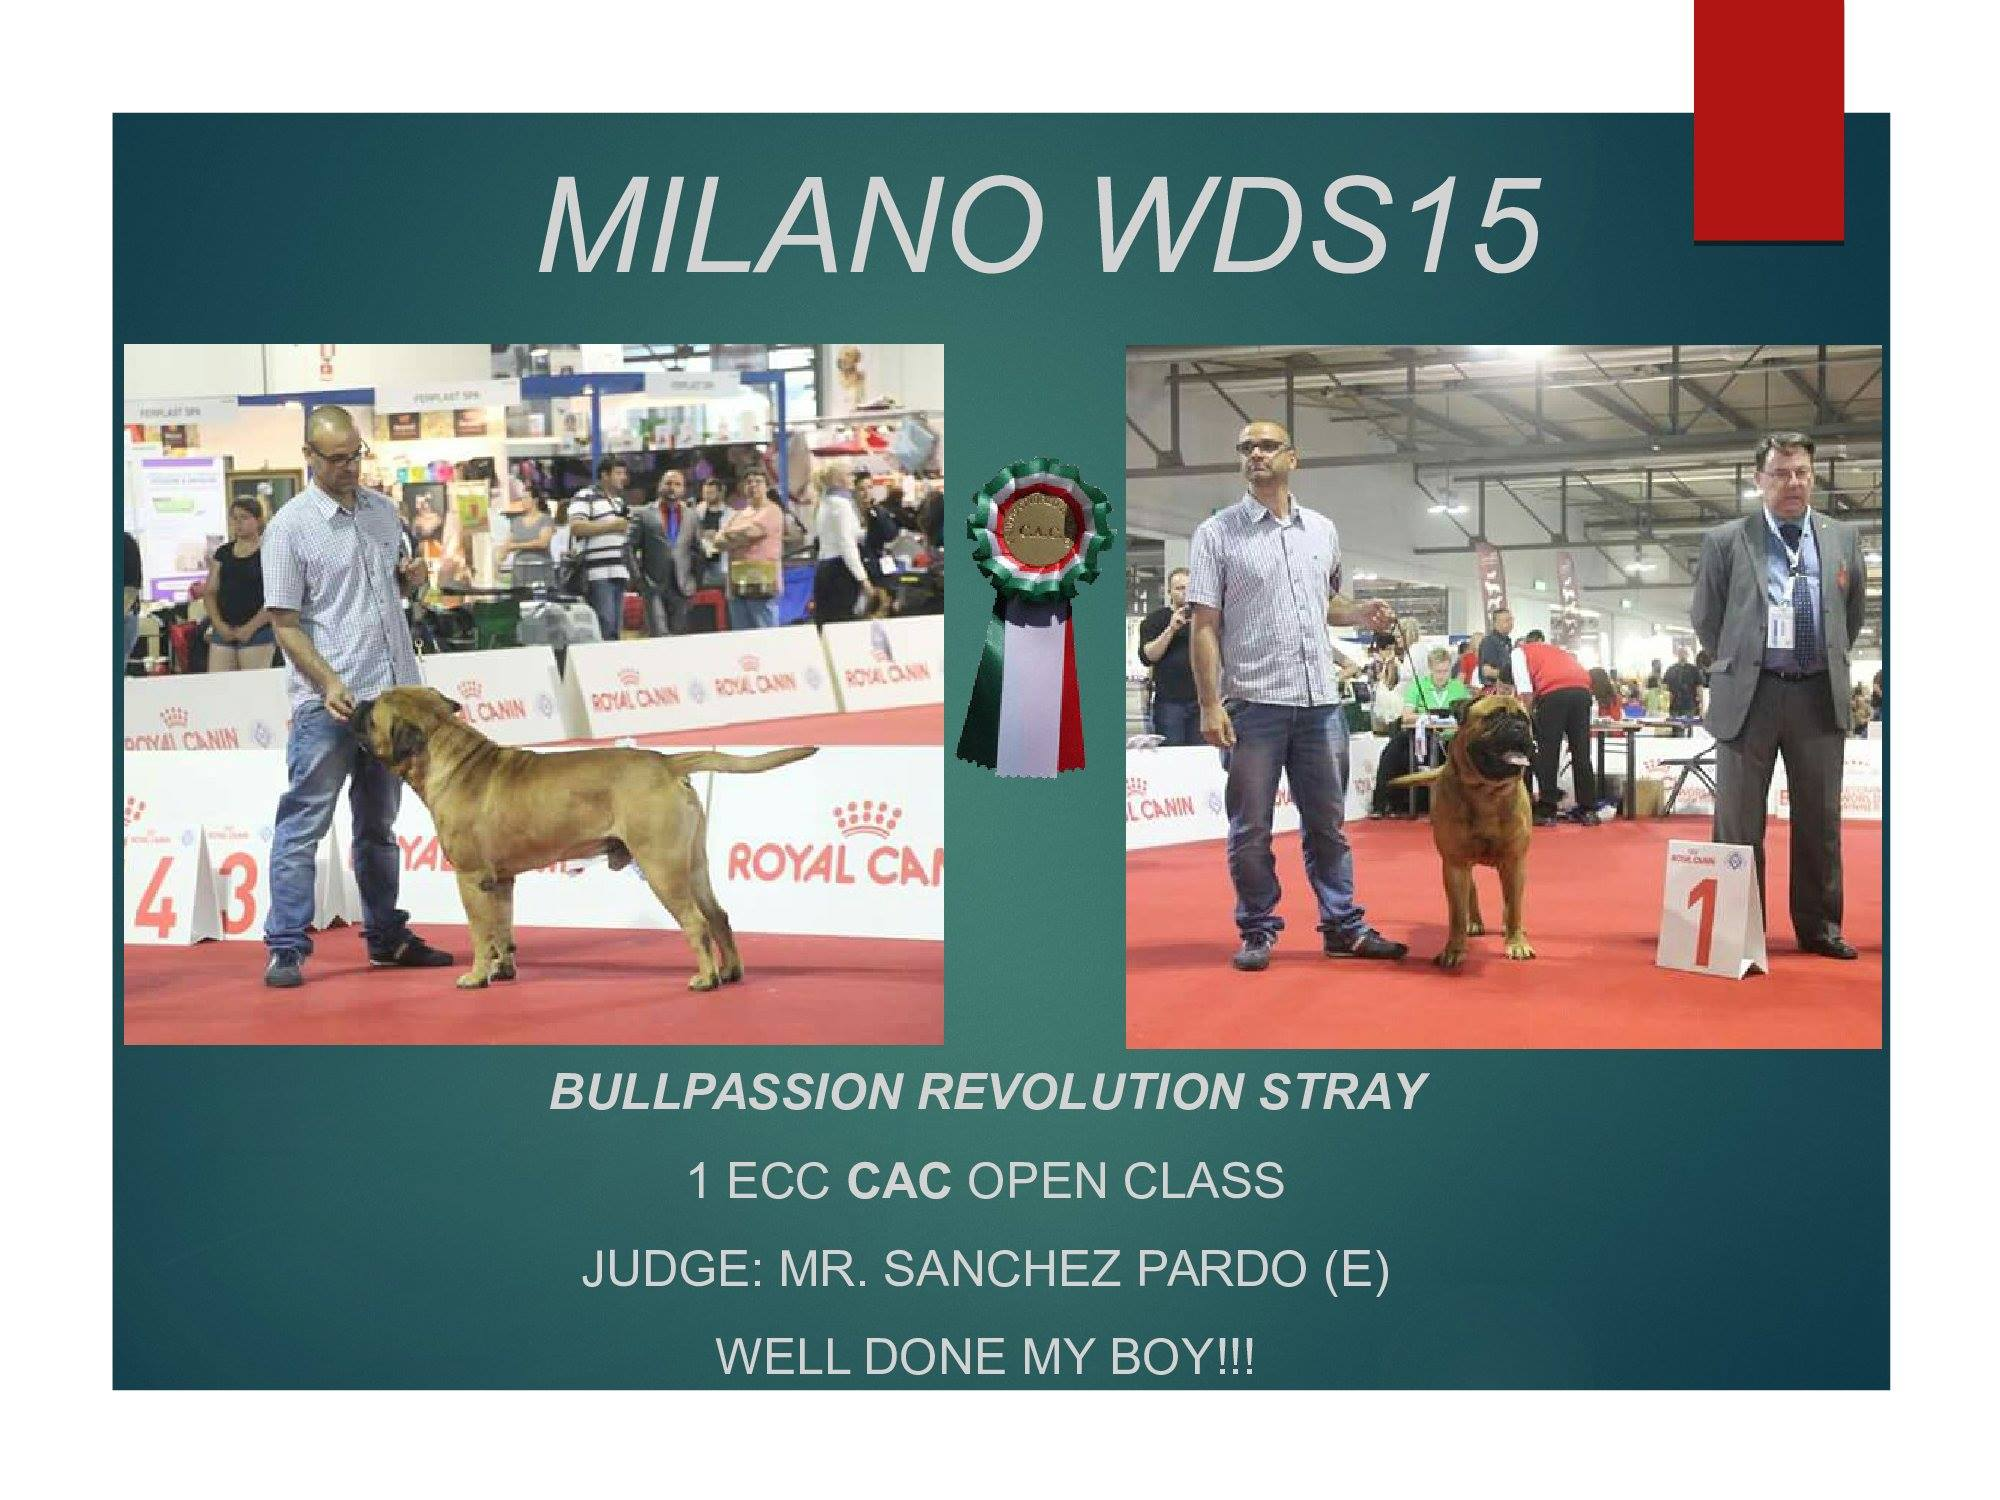 World Dog Show Milano